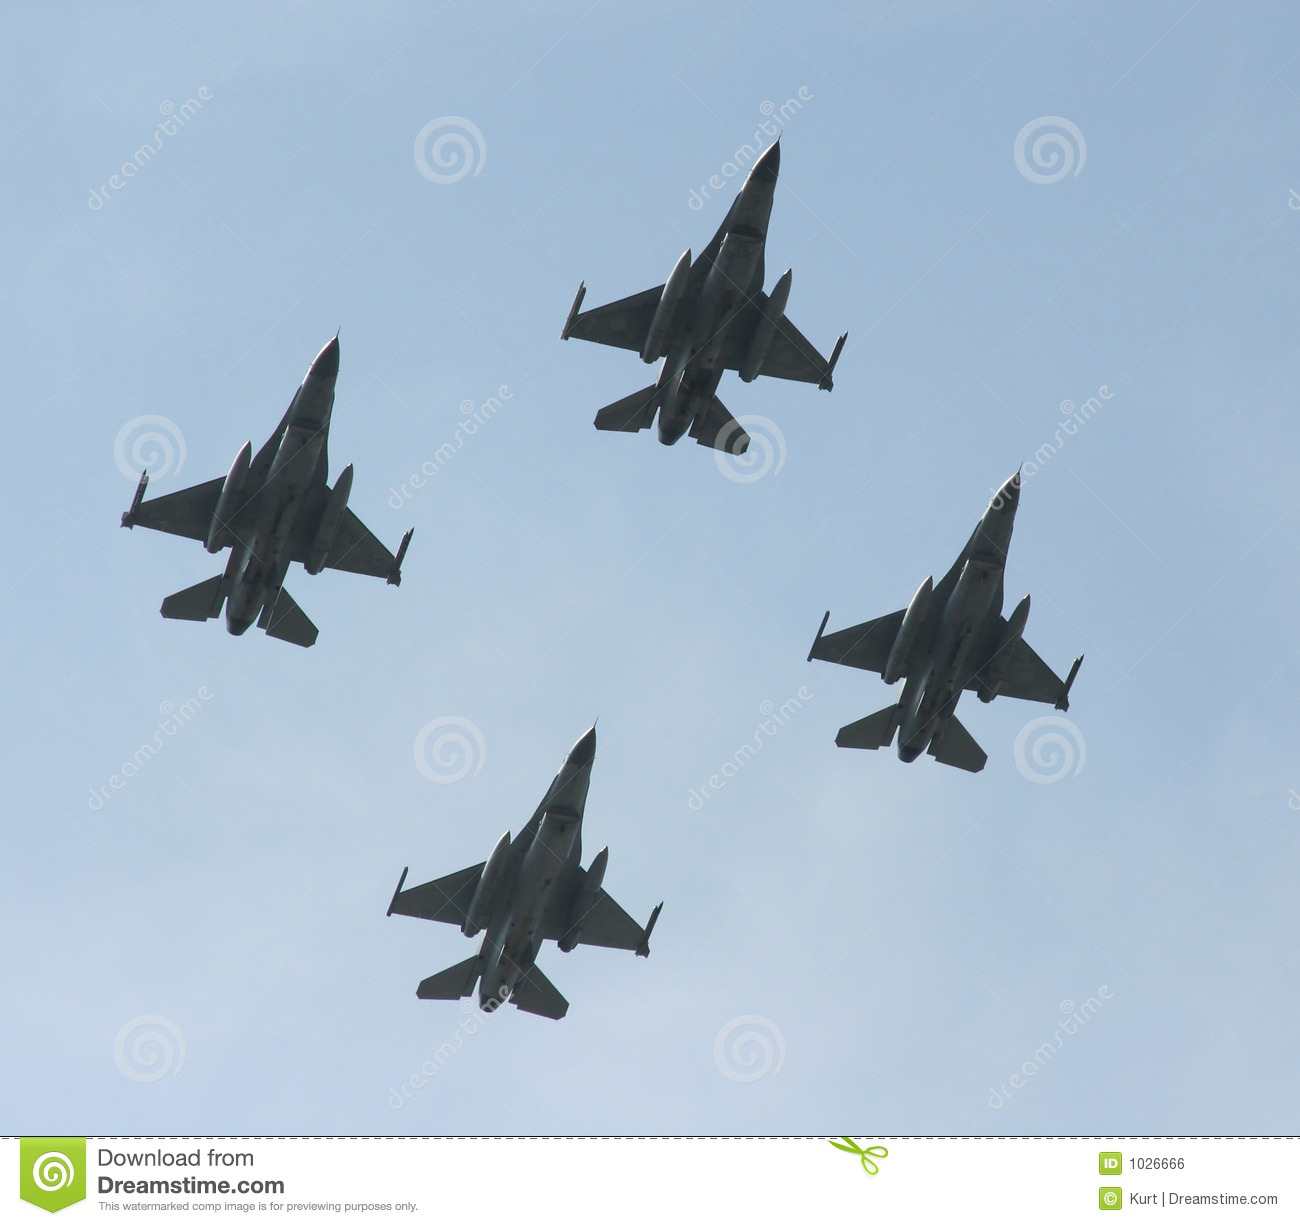 F-16 jet fighters